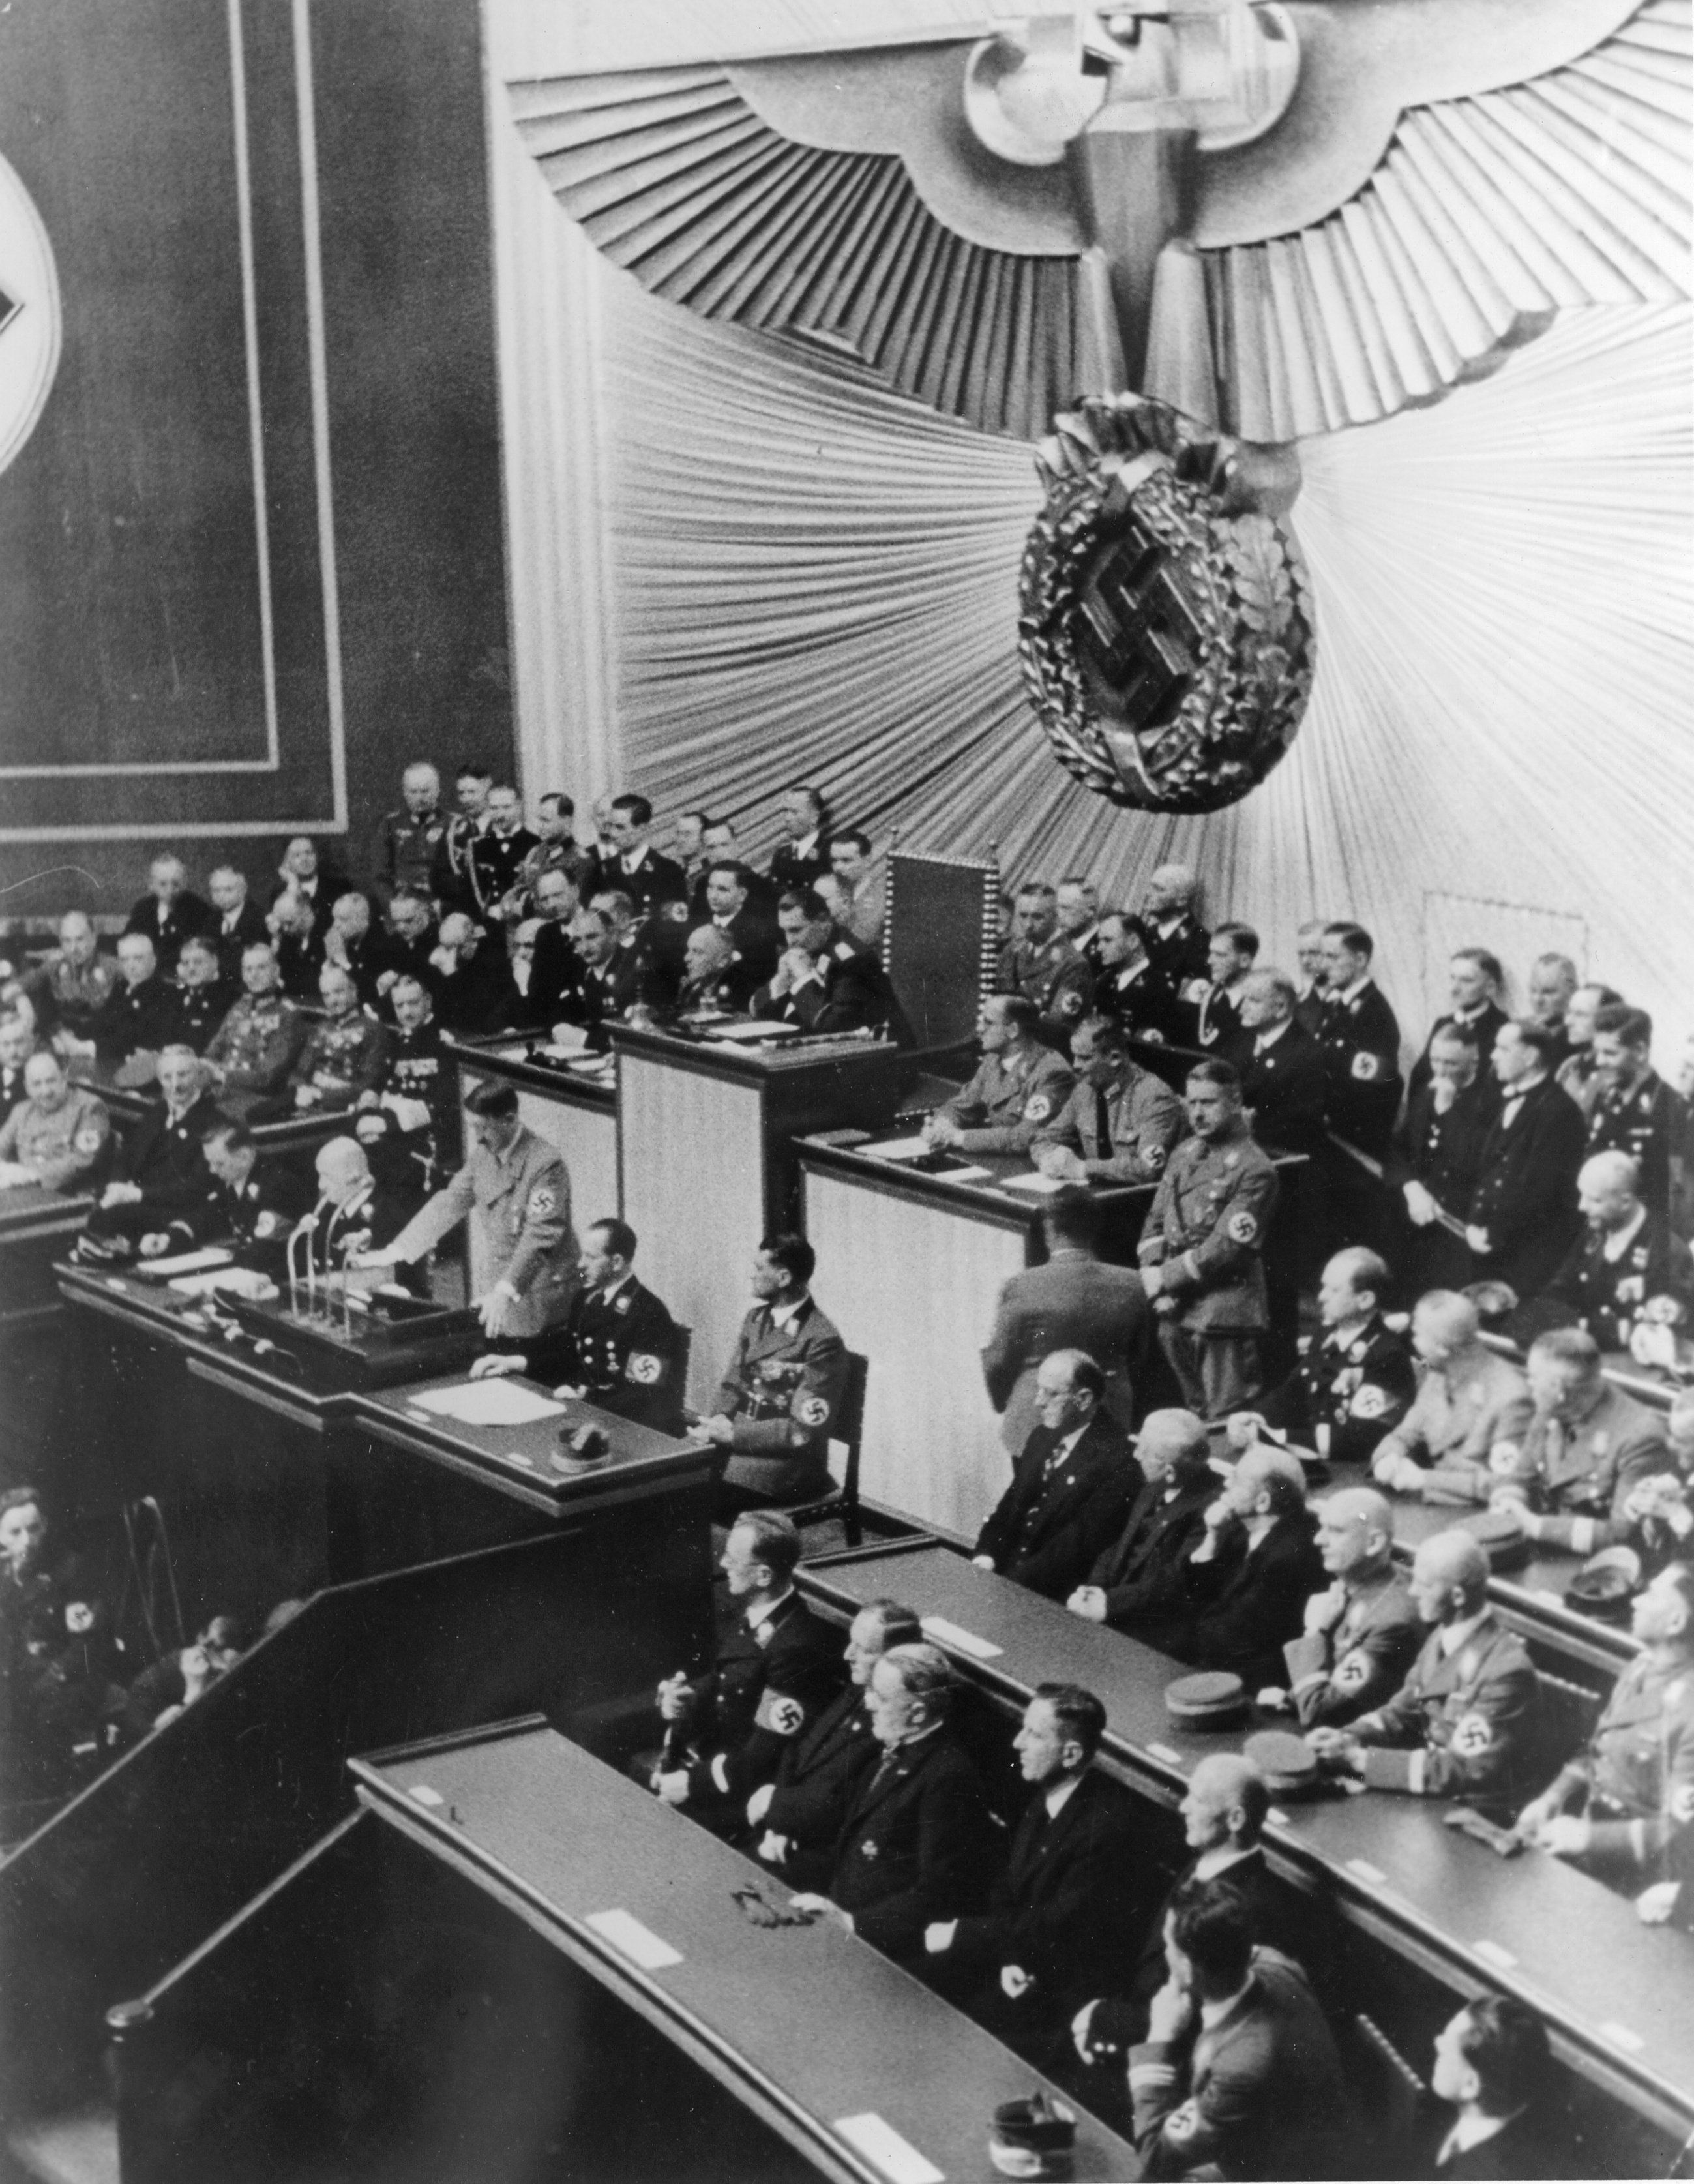 Hitler addresses the Reichstag in Berlin in 1938. Anton Reinthaller is in the first row, fifth from left, according to a caption provided by Getty